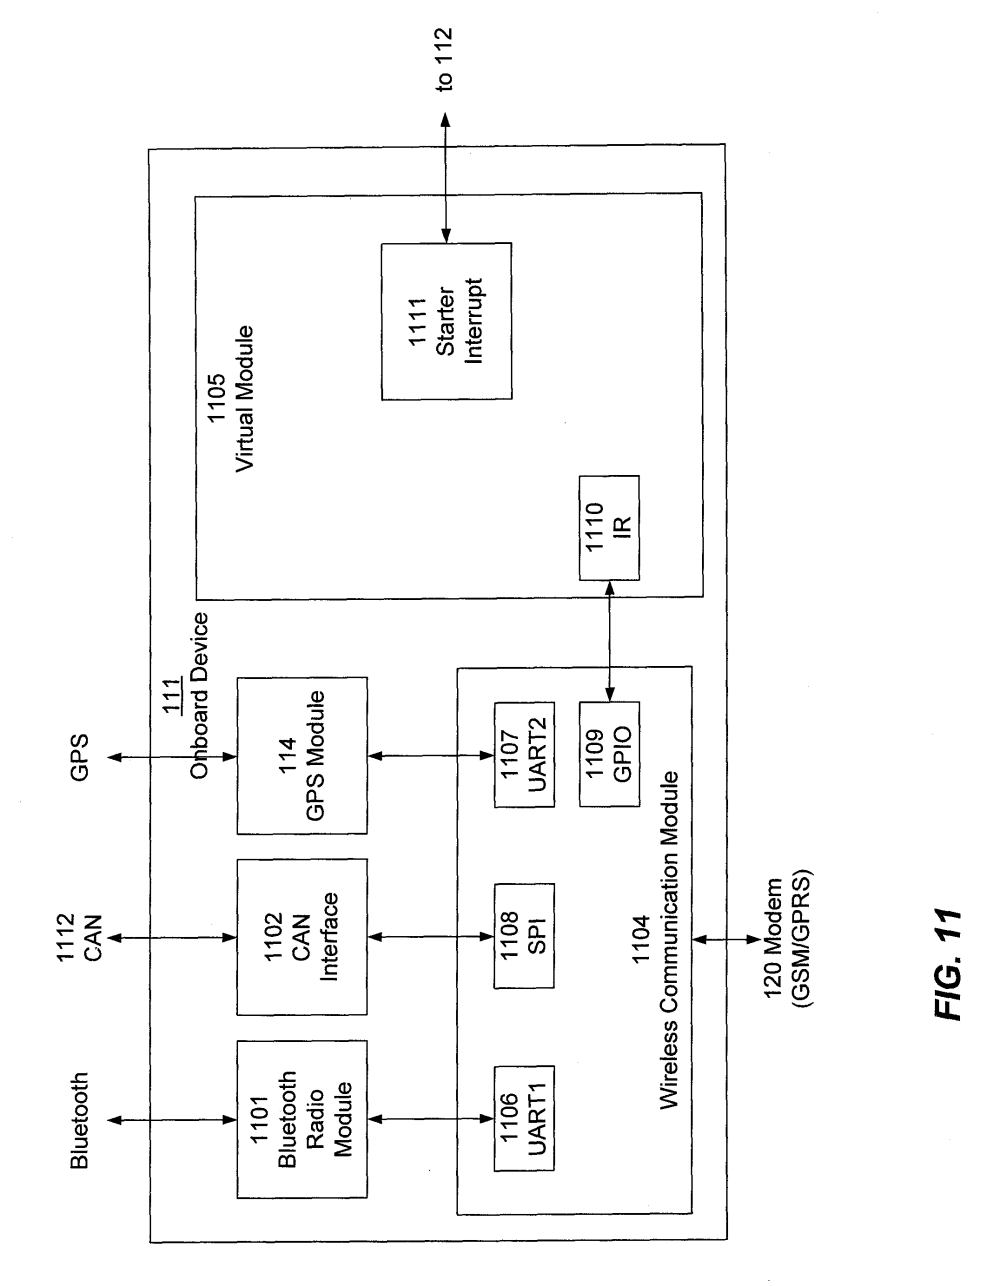 medium resolution of us20070185728a1 20070809 d00011 patent us20070185728 starter interrupt device incorporating loan plus gps wiring